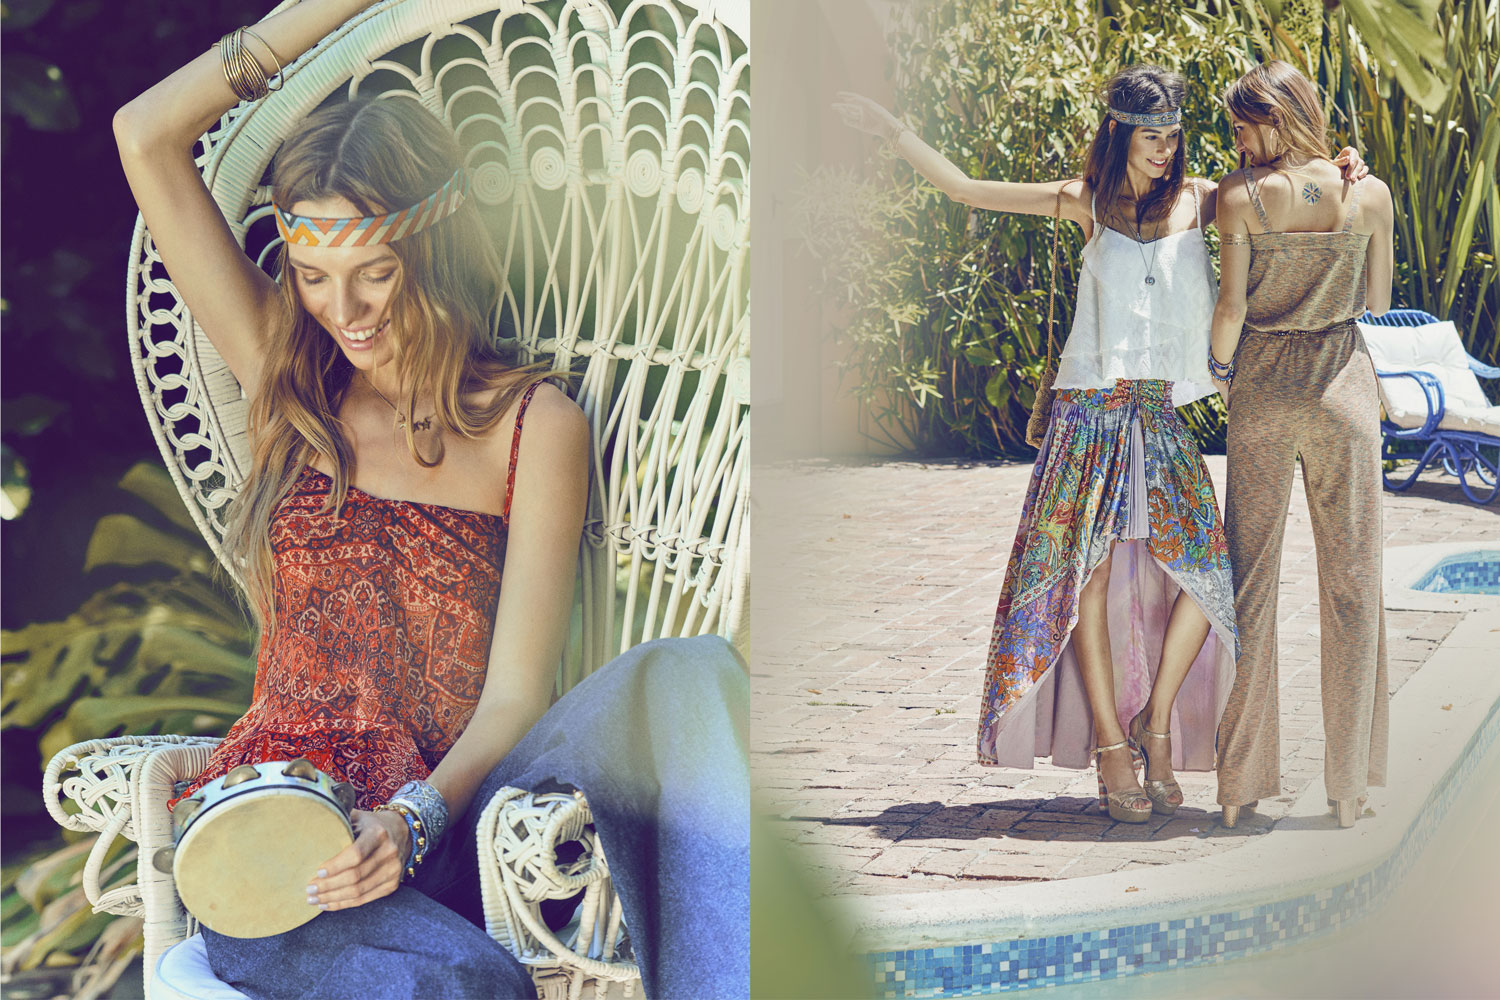 Astrid M Obert Photography presents HIPPIE STYLE